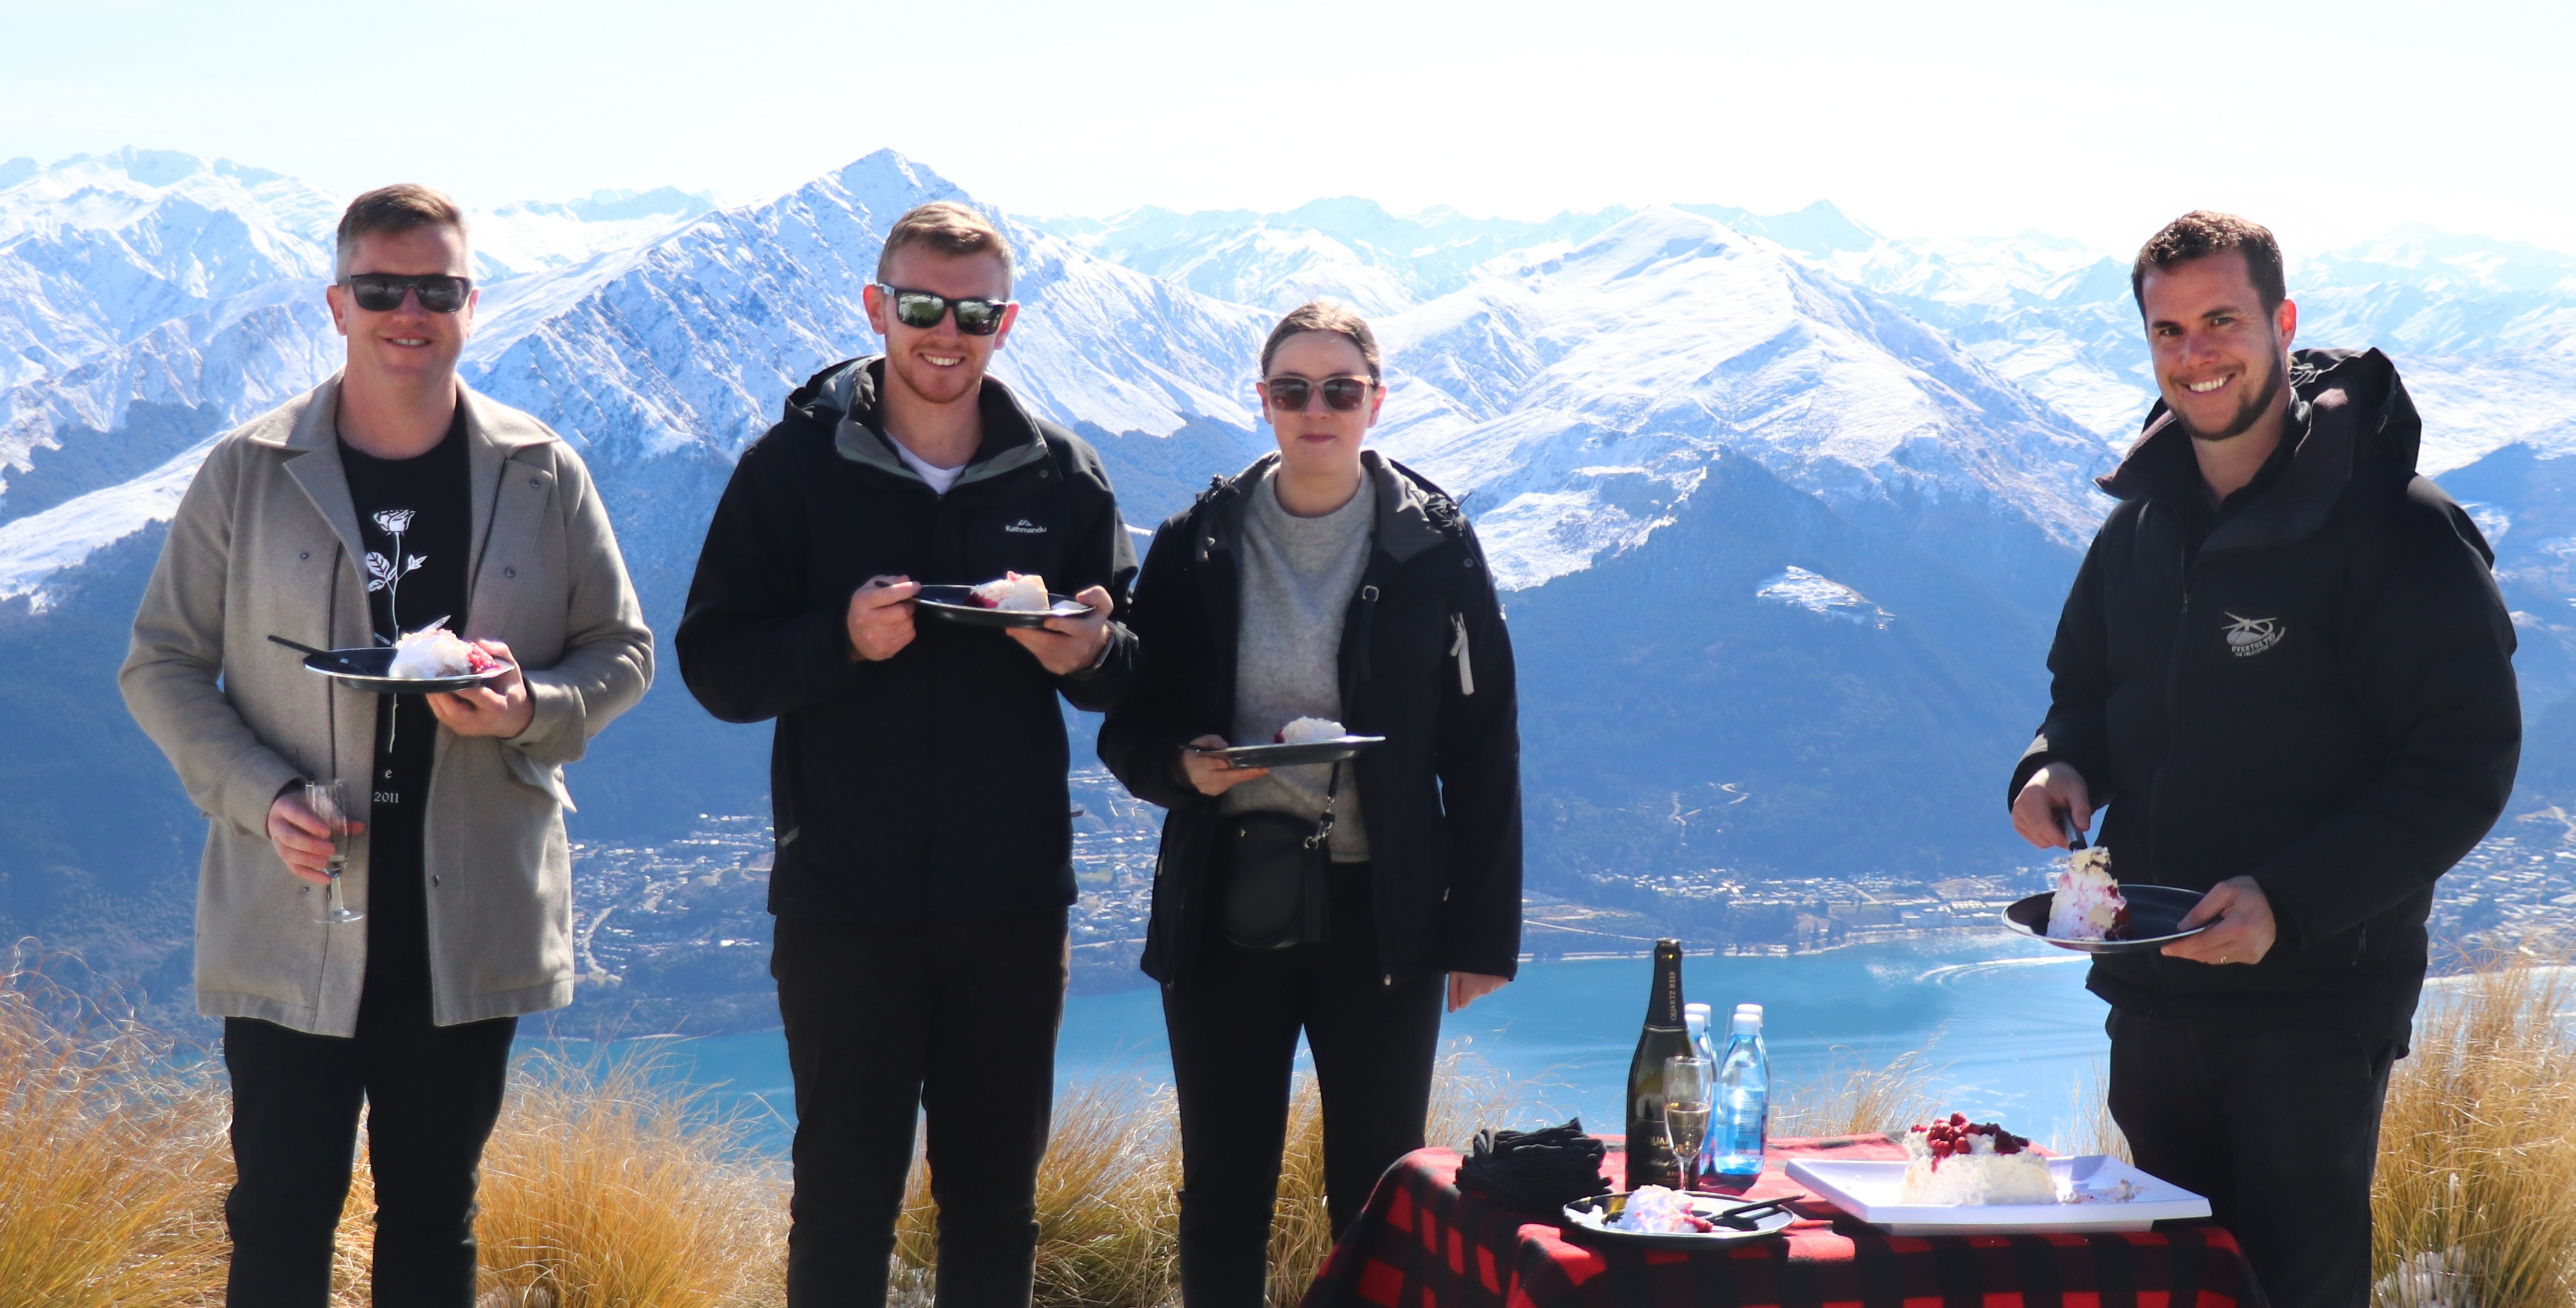 Pavlova on a Peak was tailored specifically for the Kiwi market.